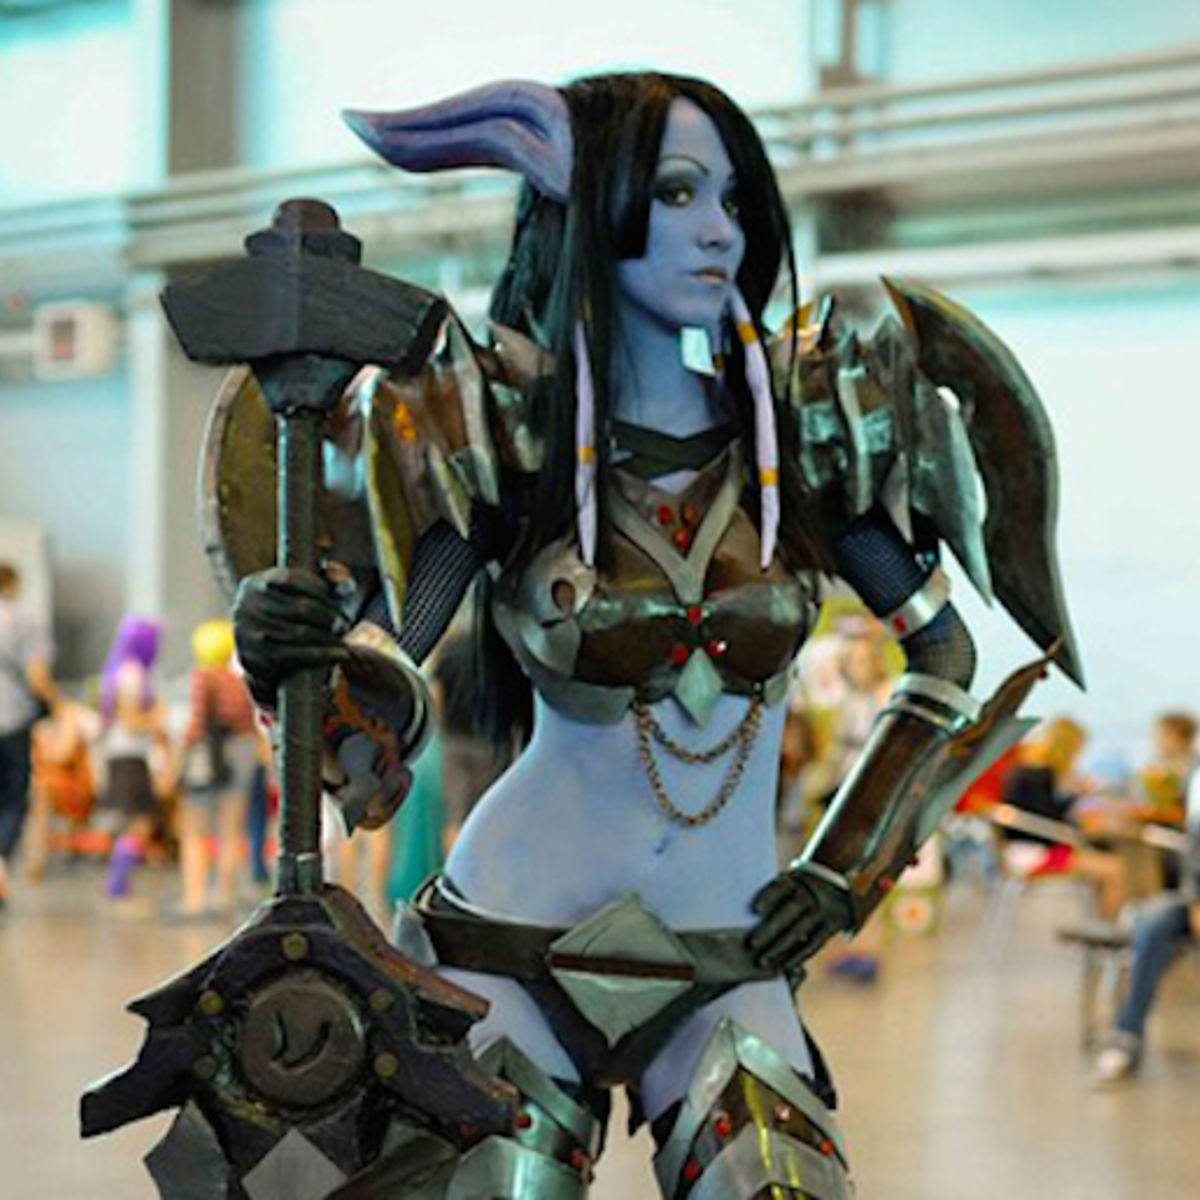 world_of_warcraft__draenei_warrior__1_by_feyische-d7qoiw0-1.jpg